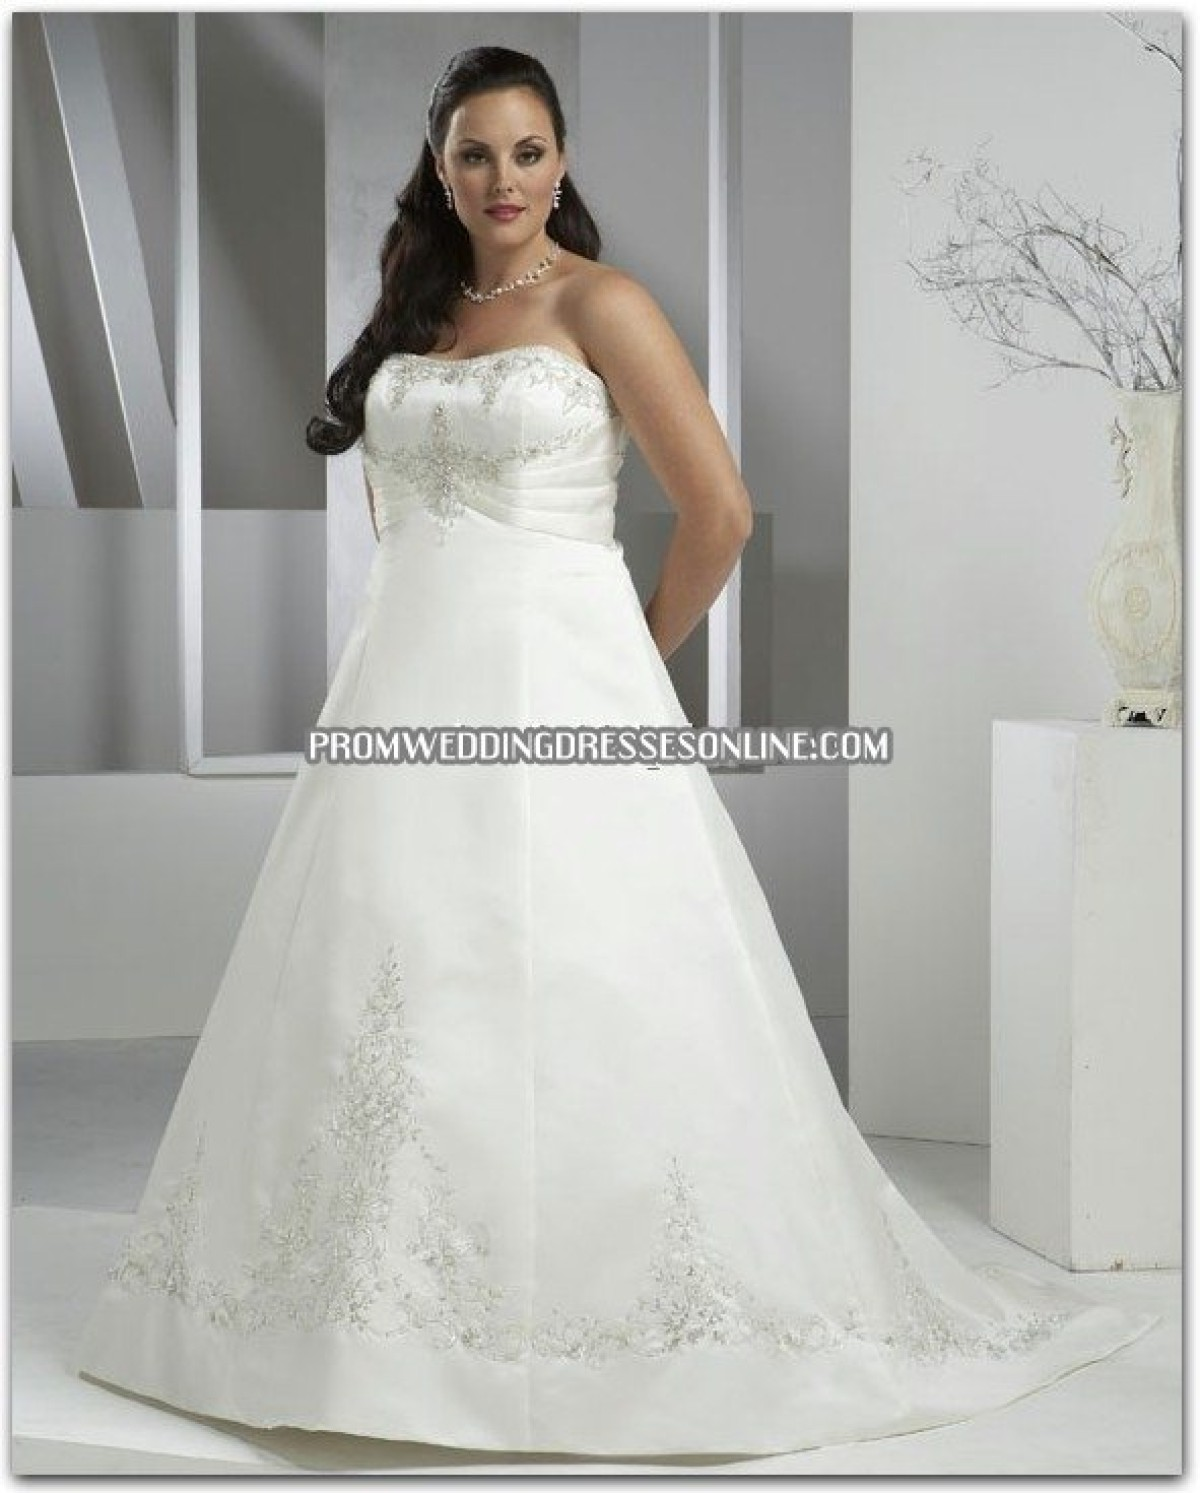 Bargain Bridal Gown